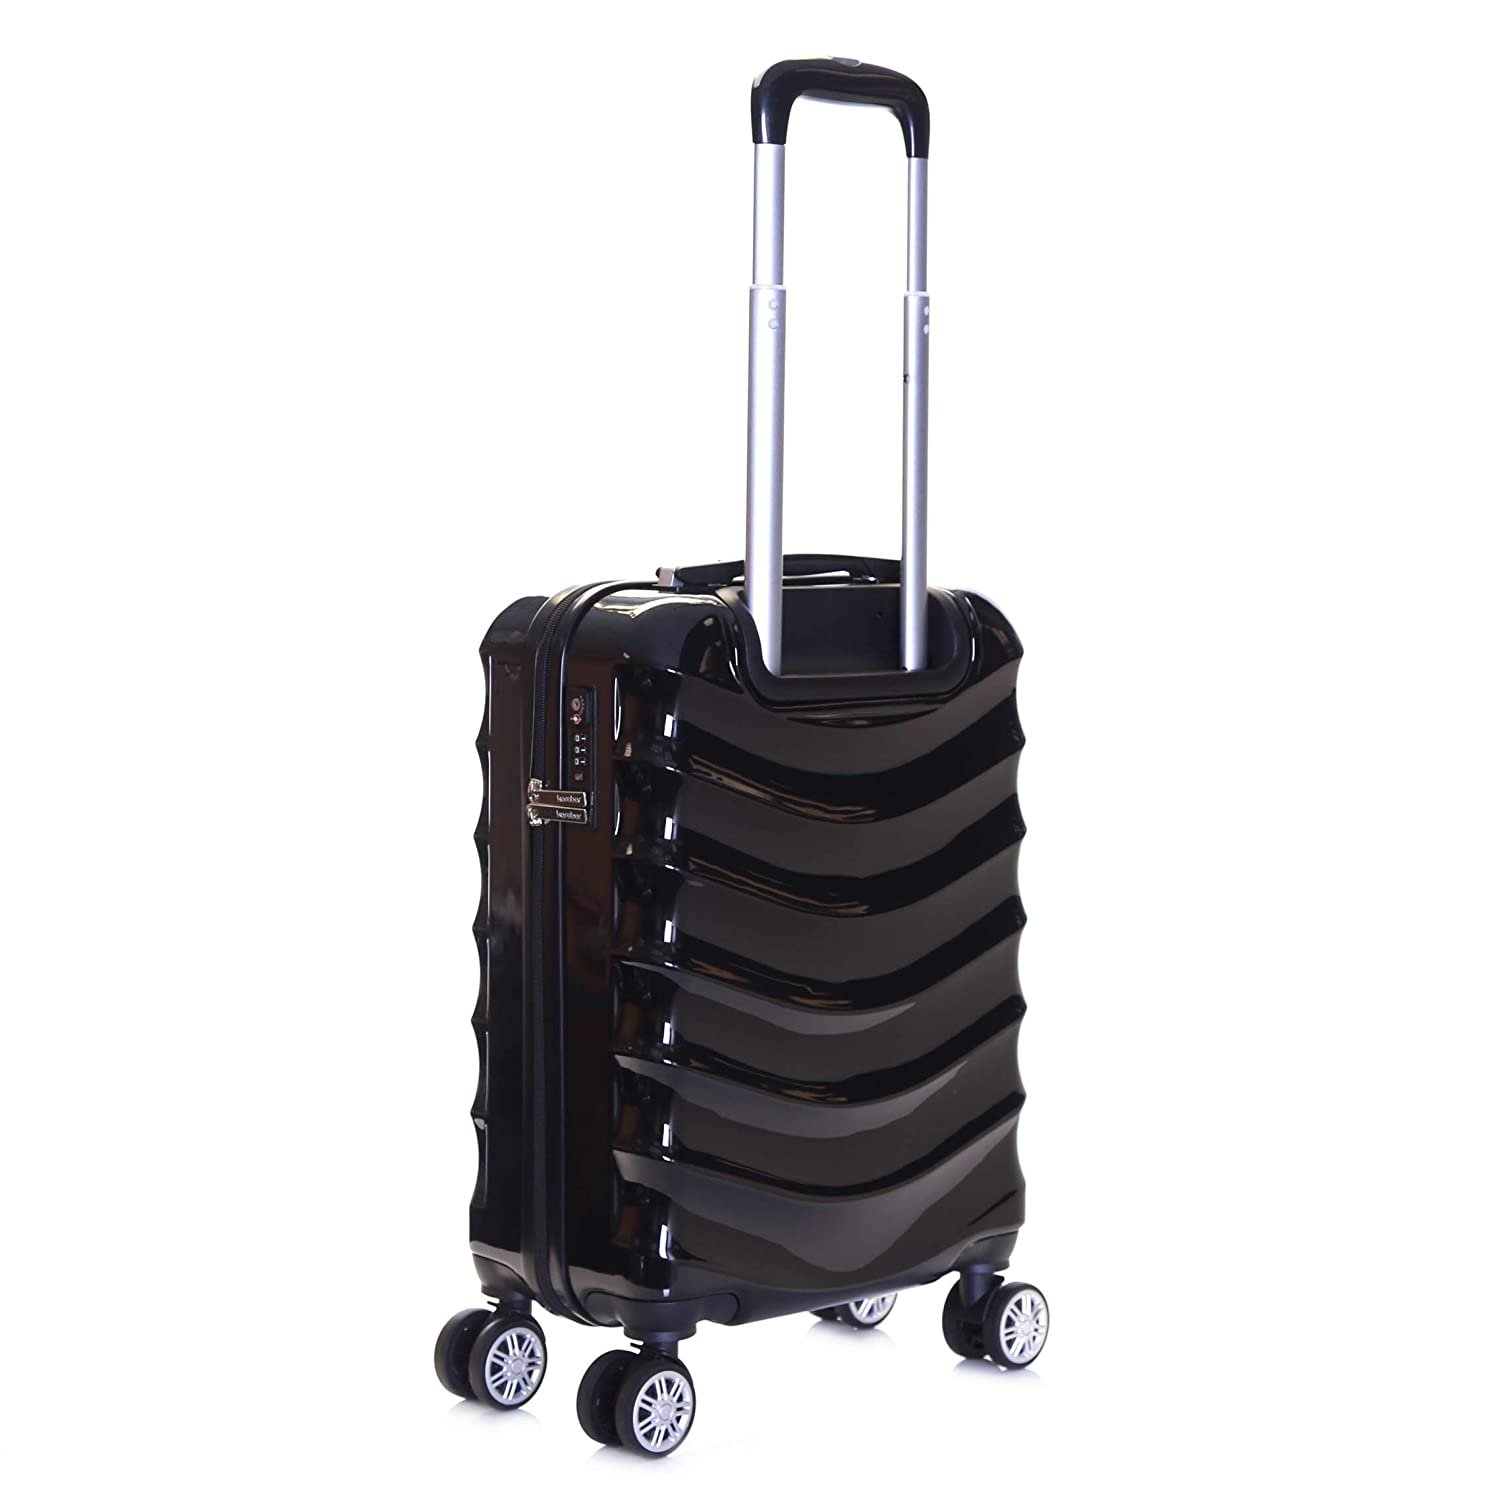 Karabar Set of 3 Hard Polycarbionate PC Suitcases Luggage Bags Small Carry-on Cabin Medium and Large ABS Shell Sets with 4 Spinner Wheels and Integrated TSA Number Lock Ripple Black